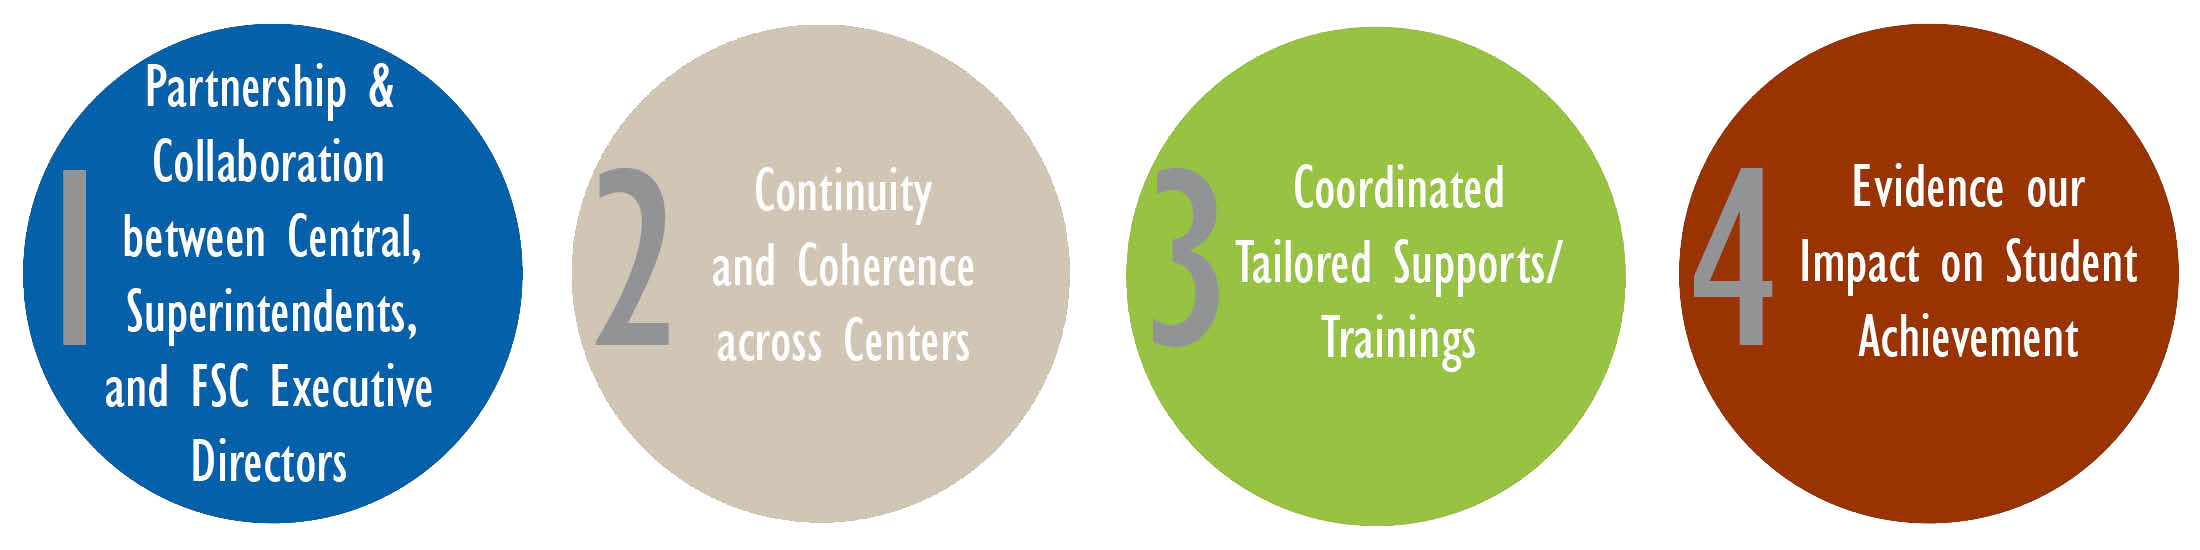 OFS Priorities (1) Partnership and collaboration (2) Continuity and Coherence (3) Coordinated/Tailored Support (4) Evidence our impact on student achievement